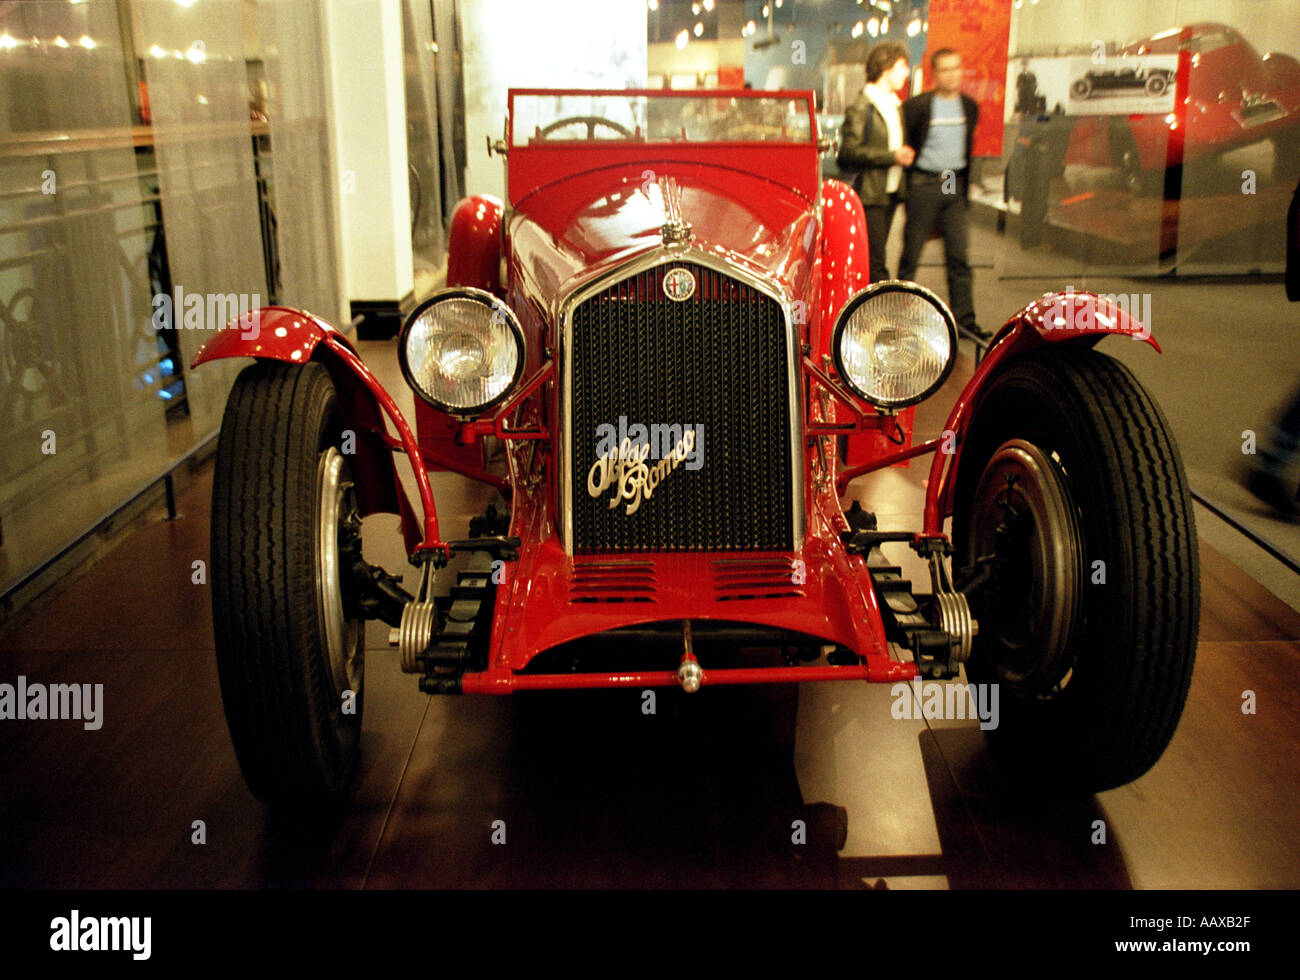 Antique Foreign Car Stock Photos & Antique Foreign Car Stock Images ...